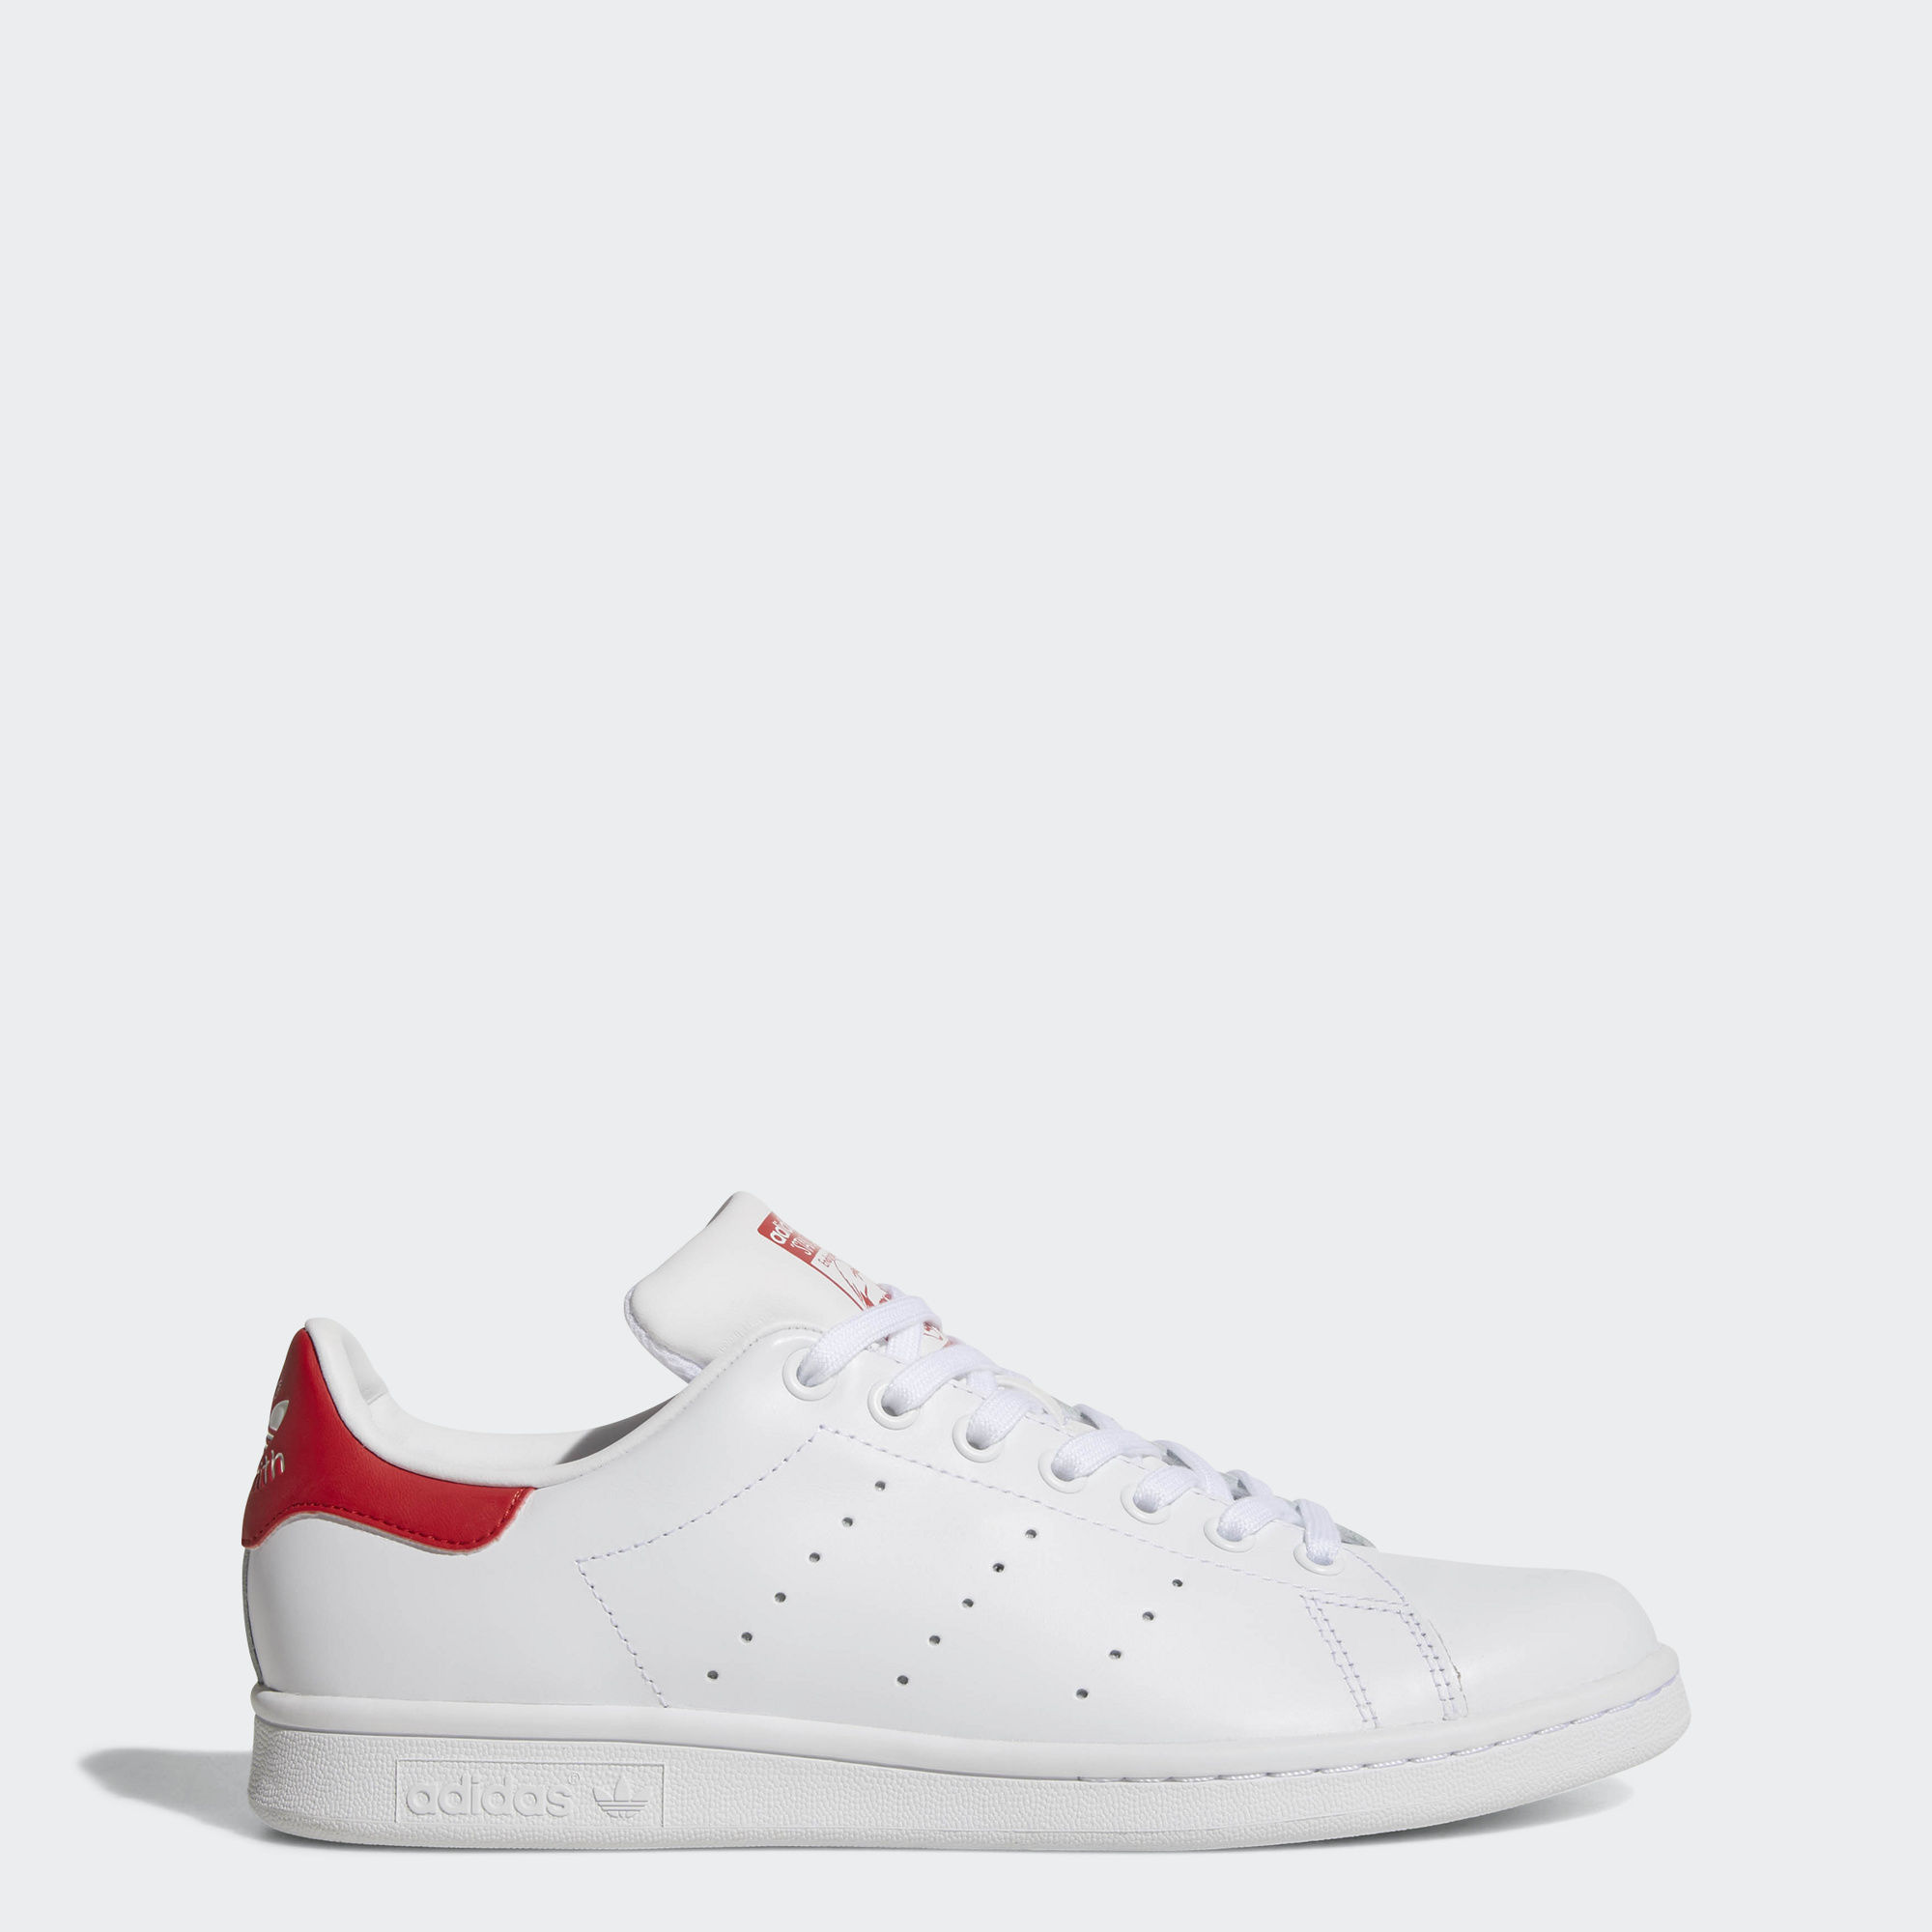 Stan smith femme pas cher taille 41